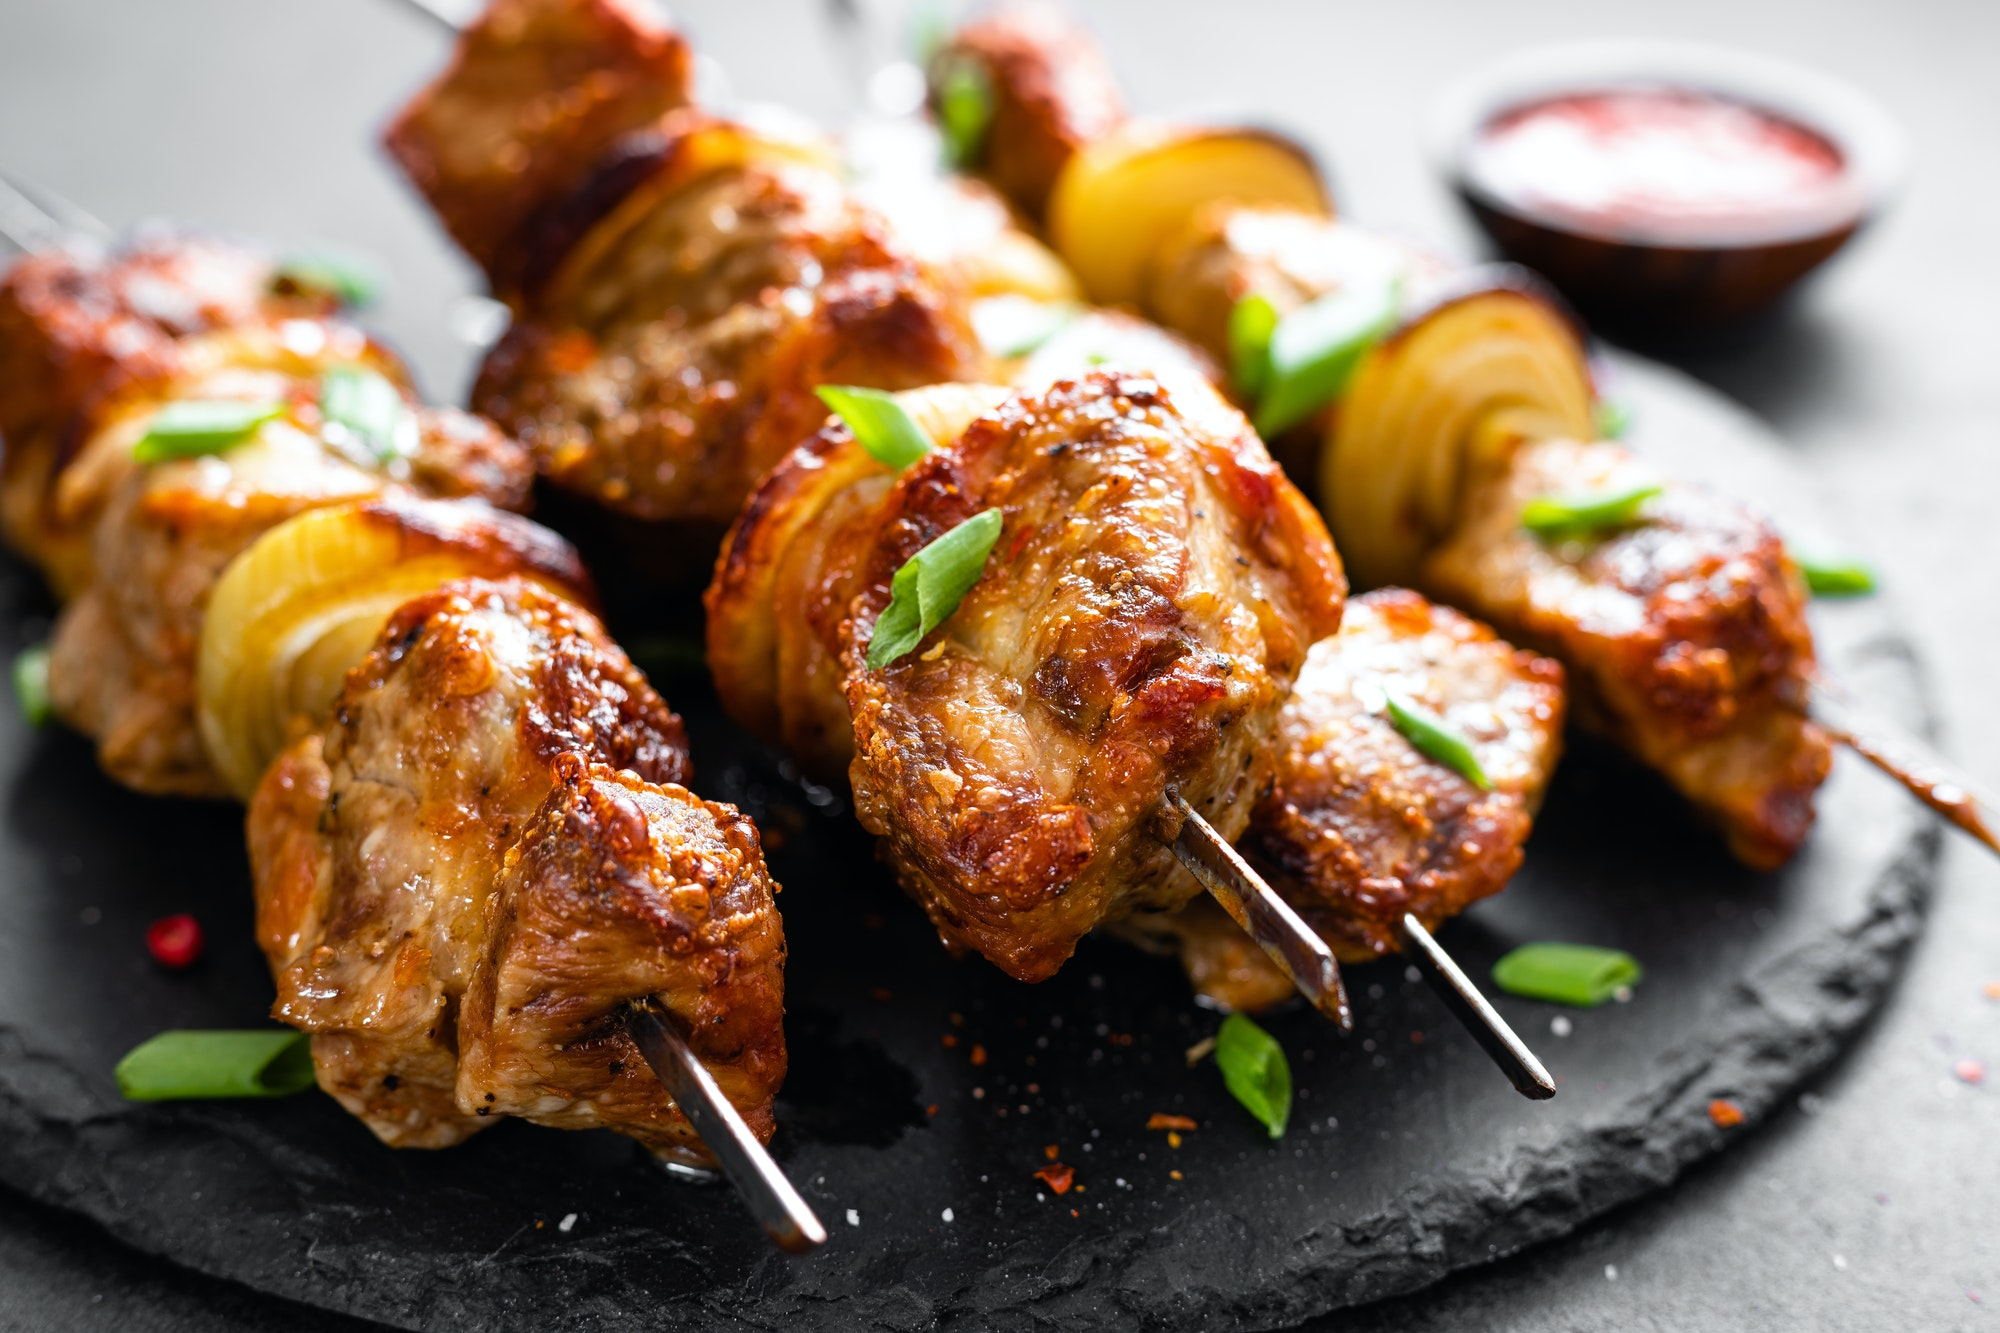 Grilled meat skewers, shish kebab on black background